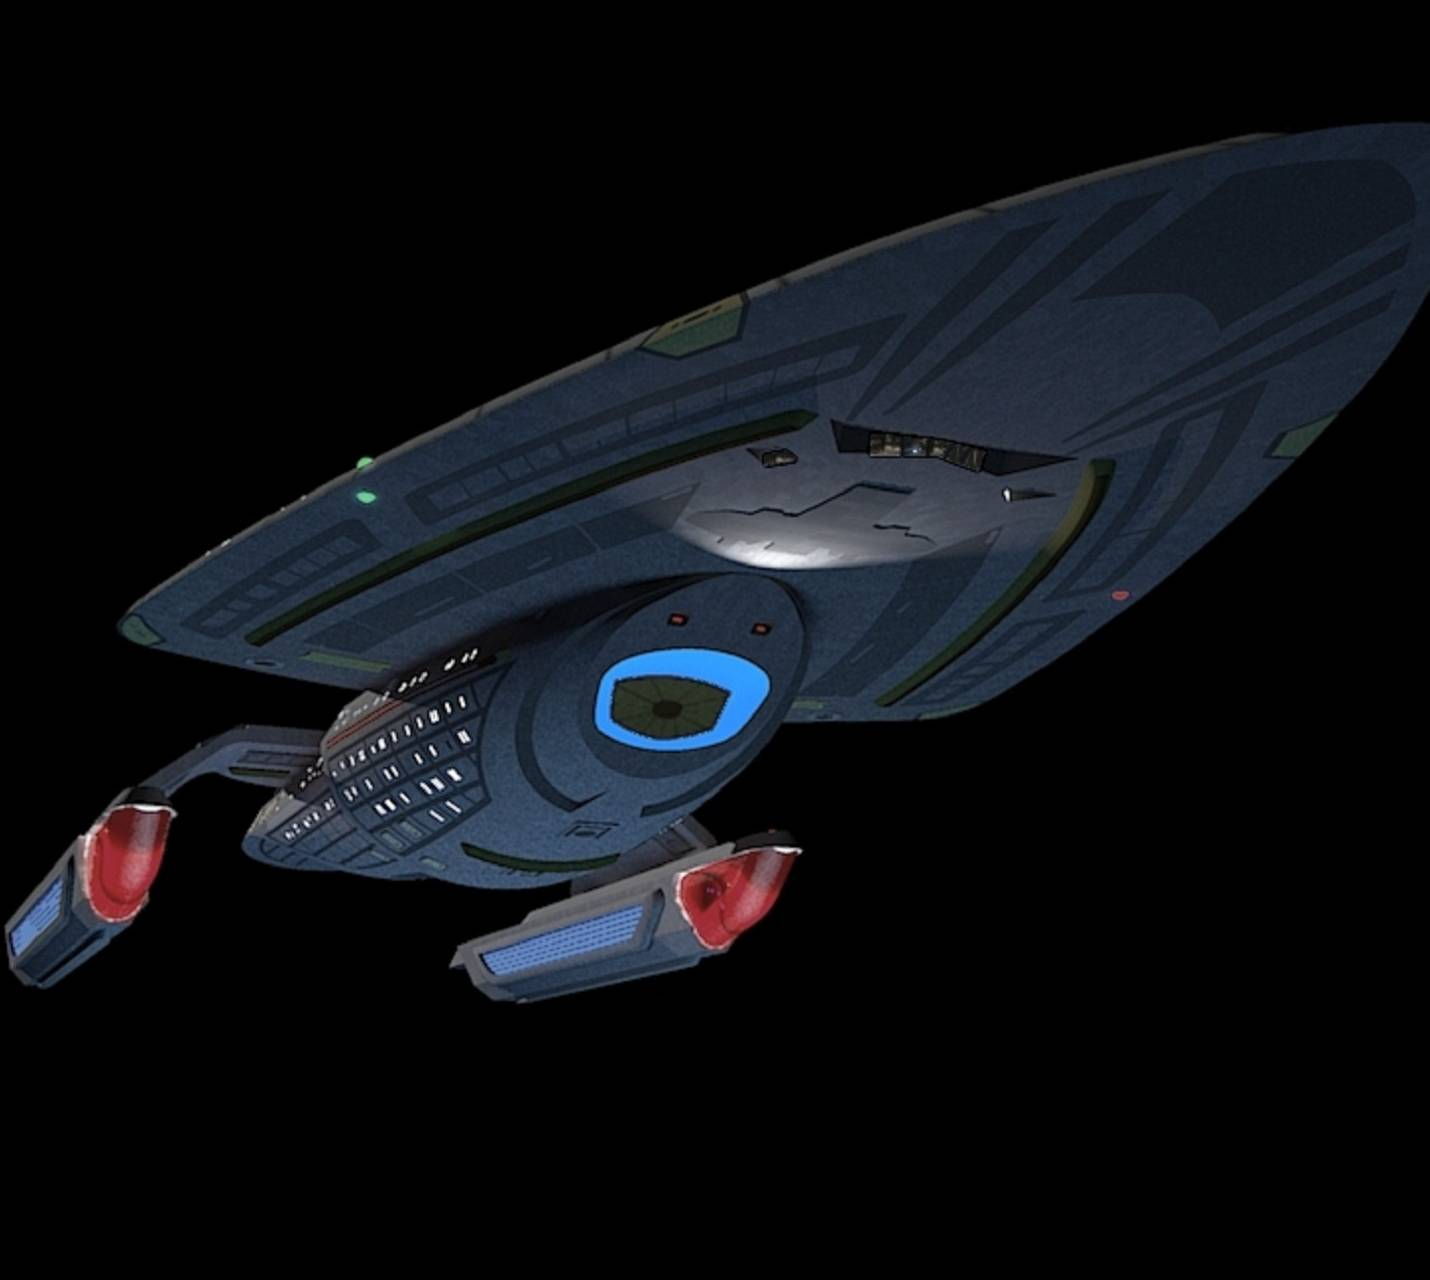 Uss Voyager Prototyp Wallpaper By Calamitysi 2c Free On